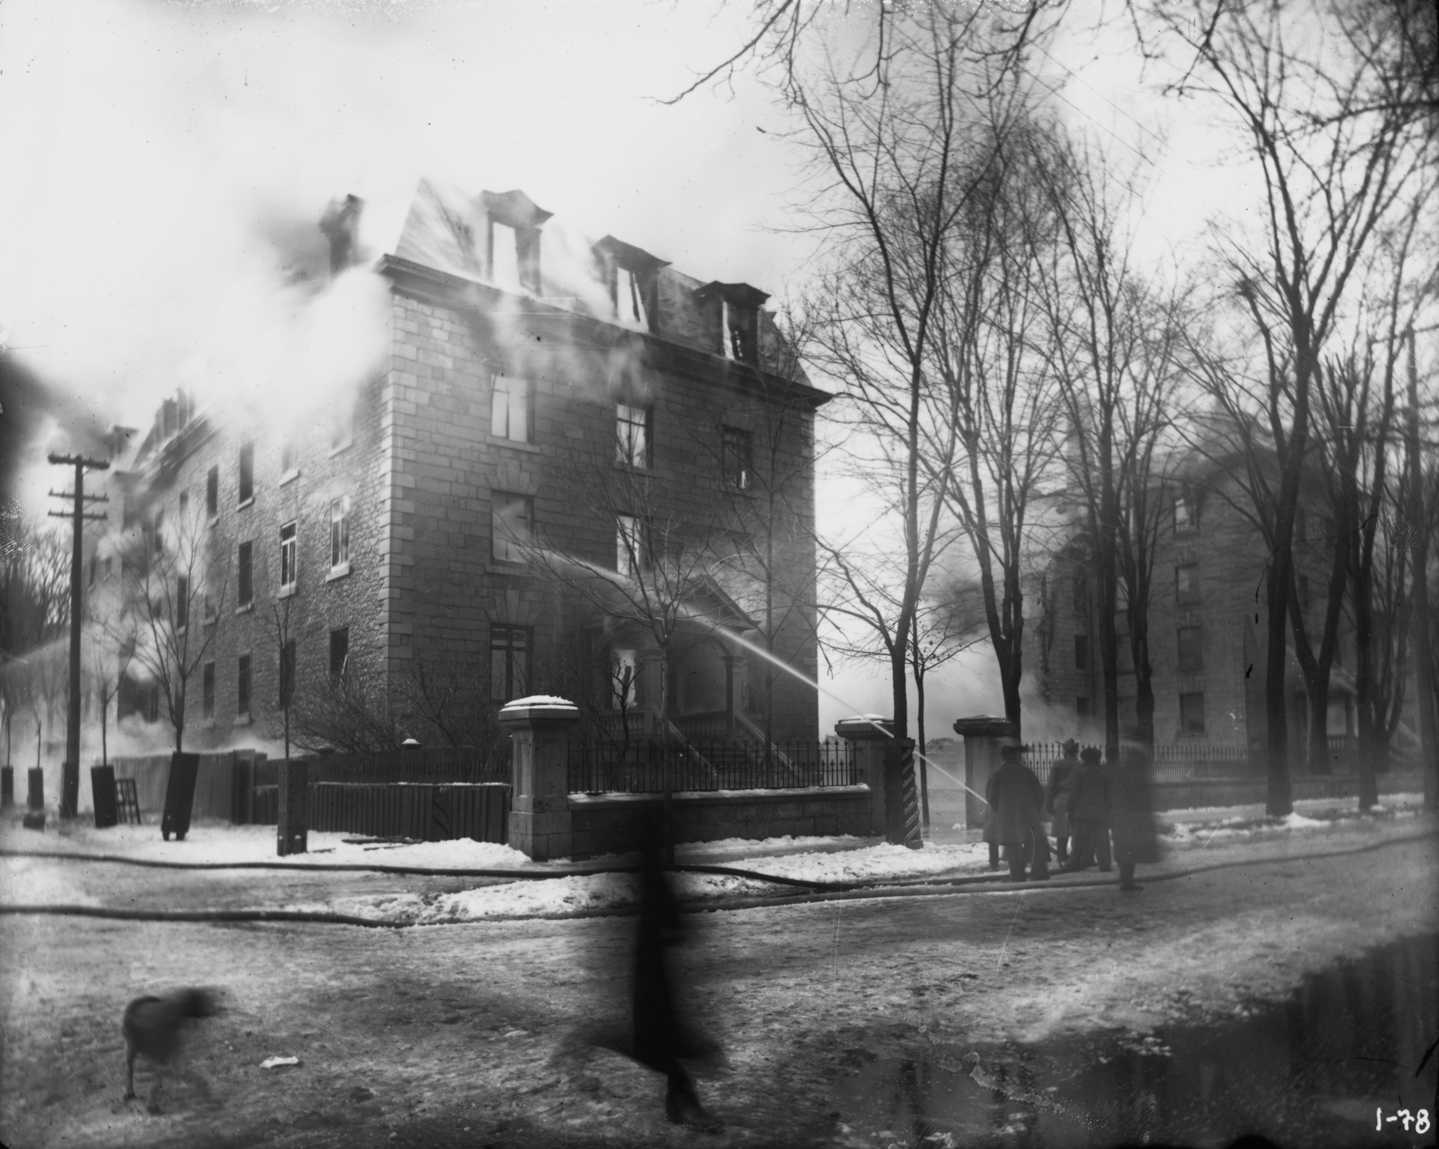 Photograph of the university's main building during the 1903 fire incident